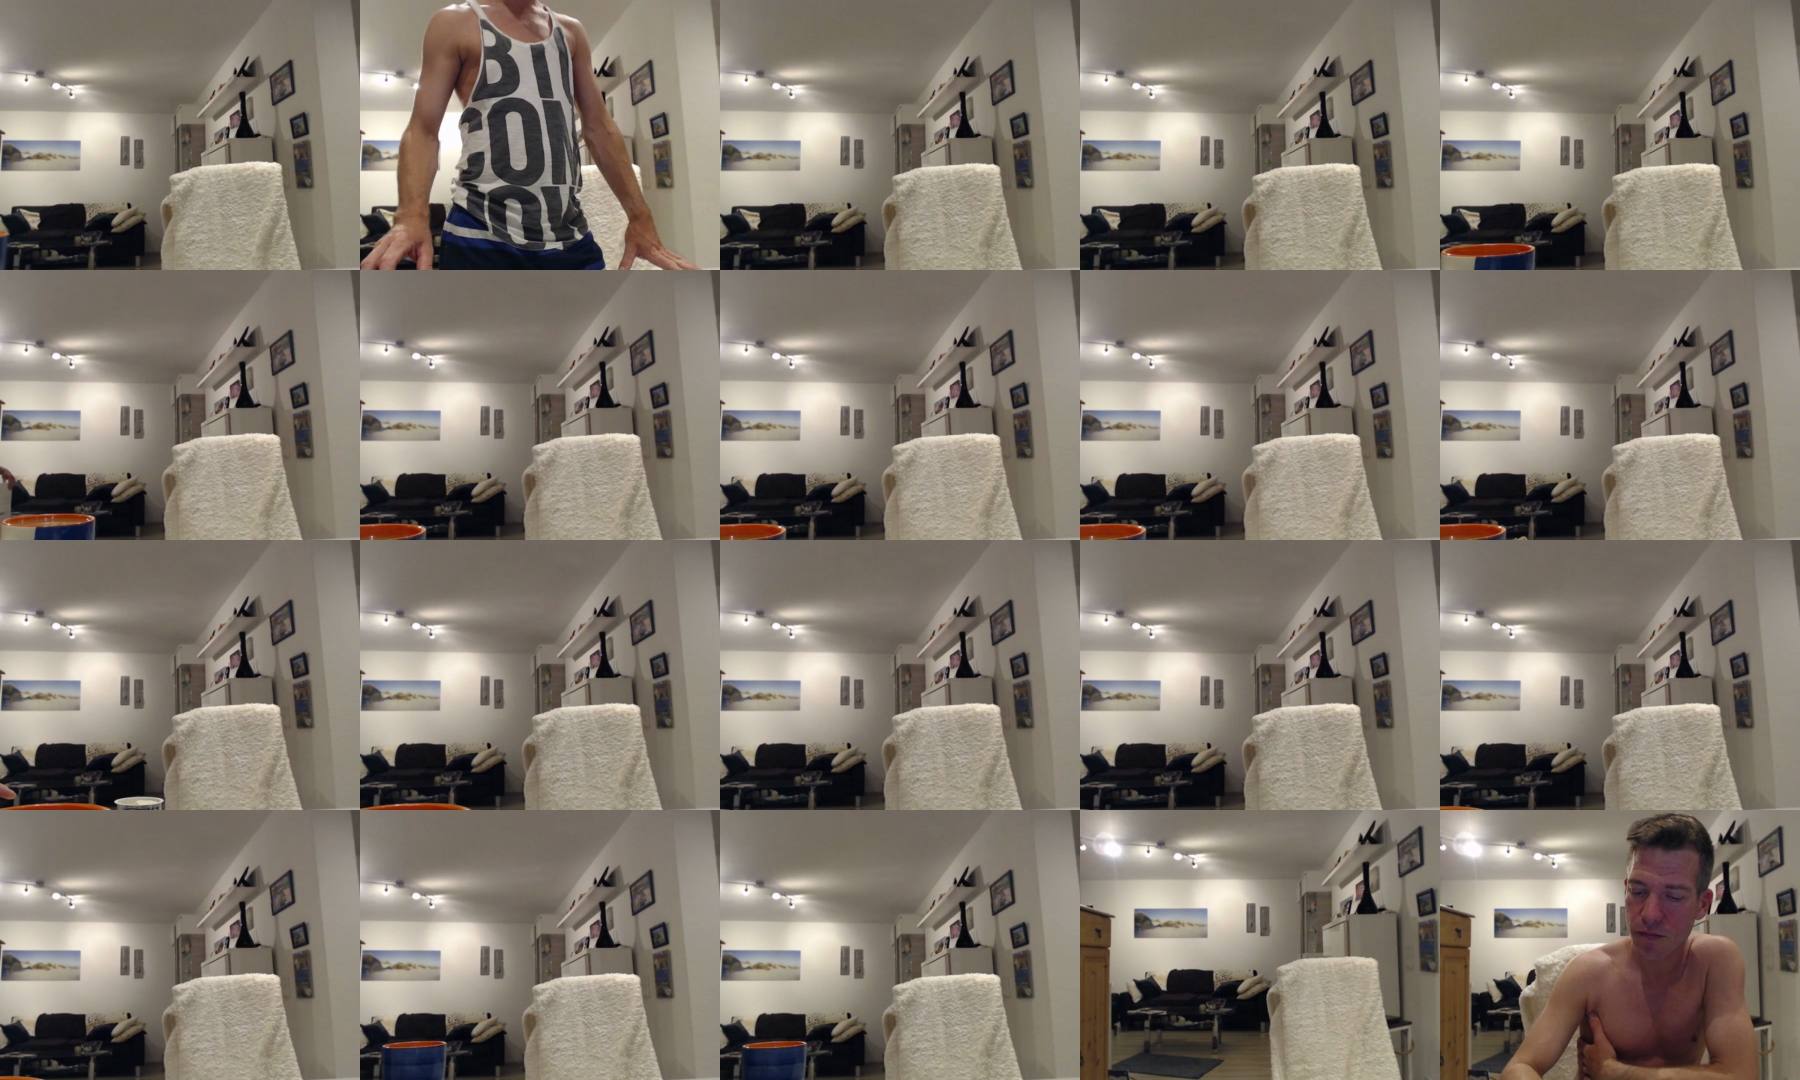 1sexysexy Cam4 28-07-2021 Recorded Video Cam